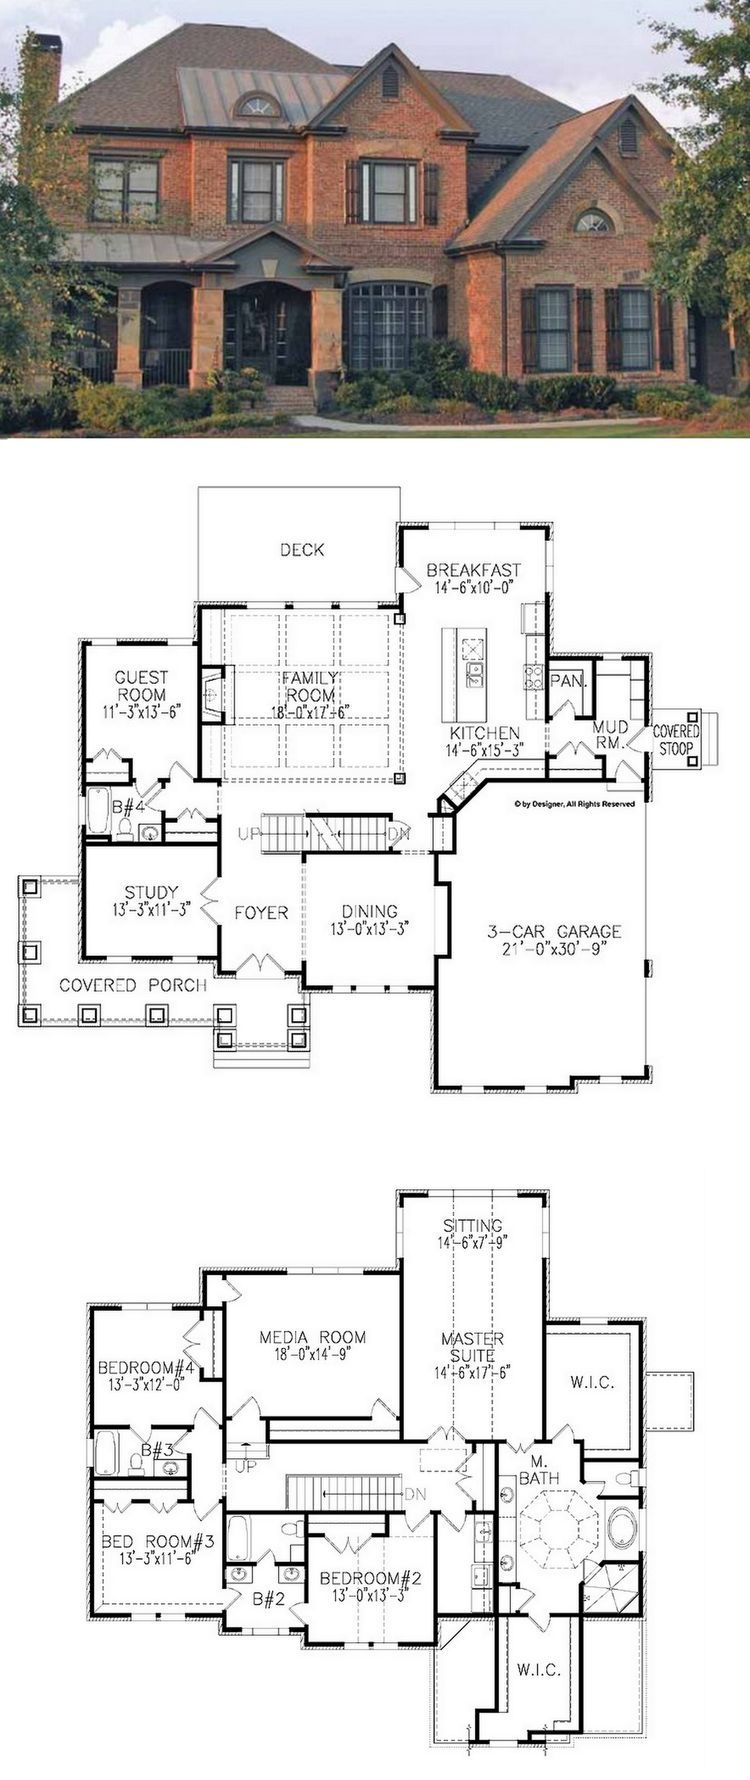 2 Story 2 Bedroom House Plan Incredible House Construction Planset of dining room